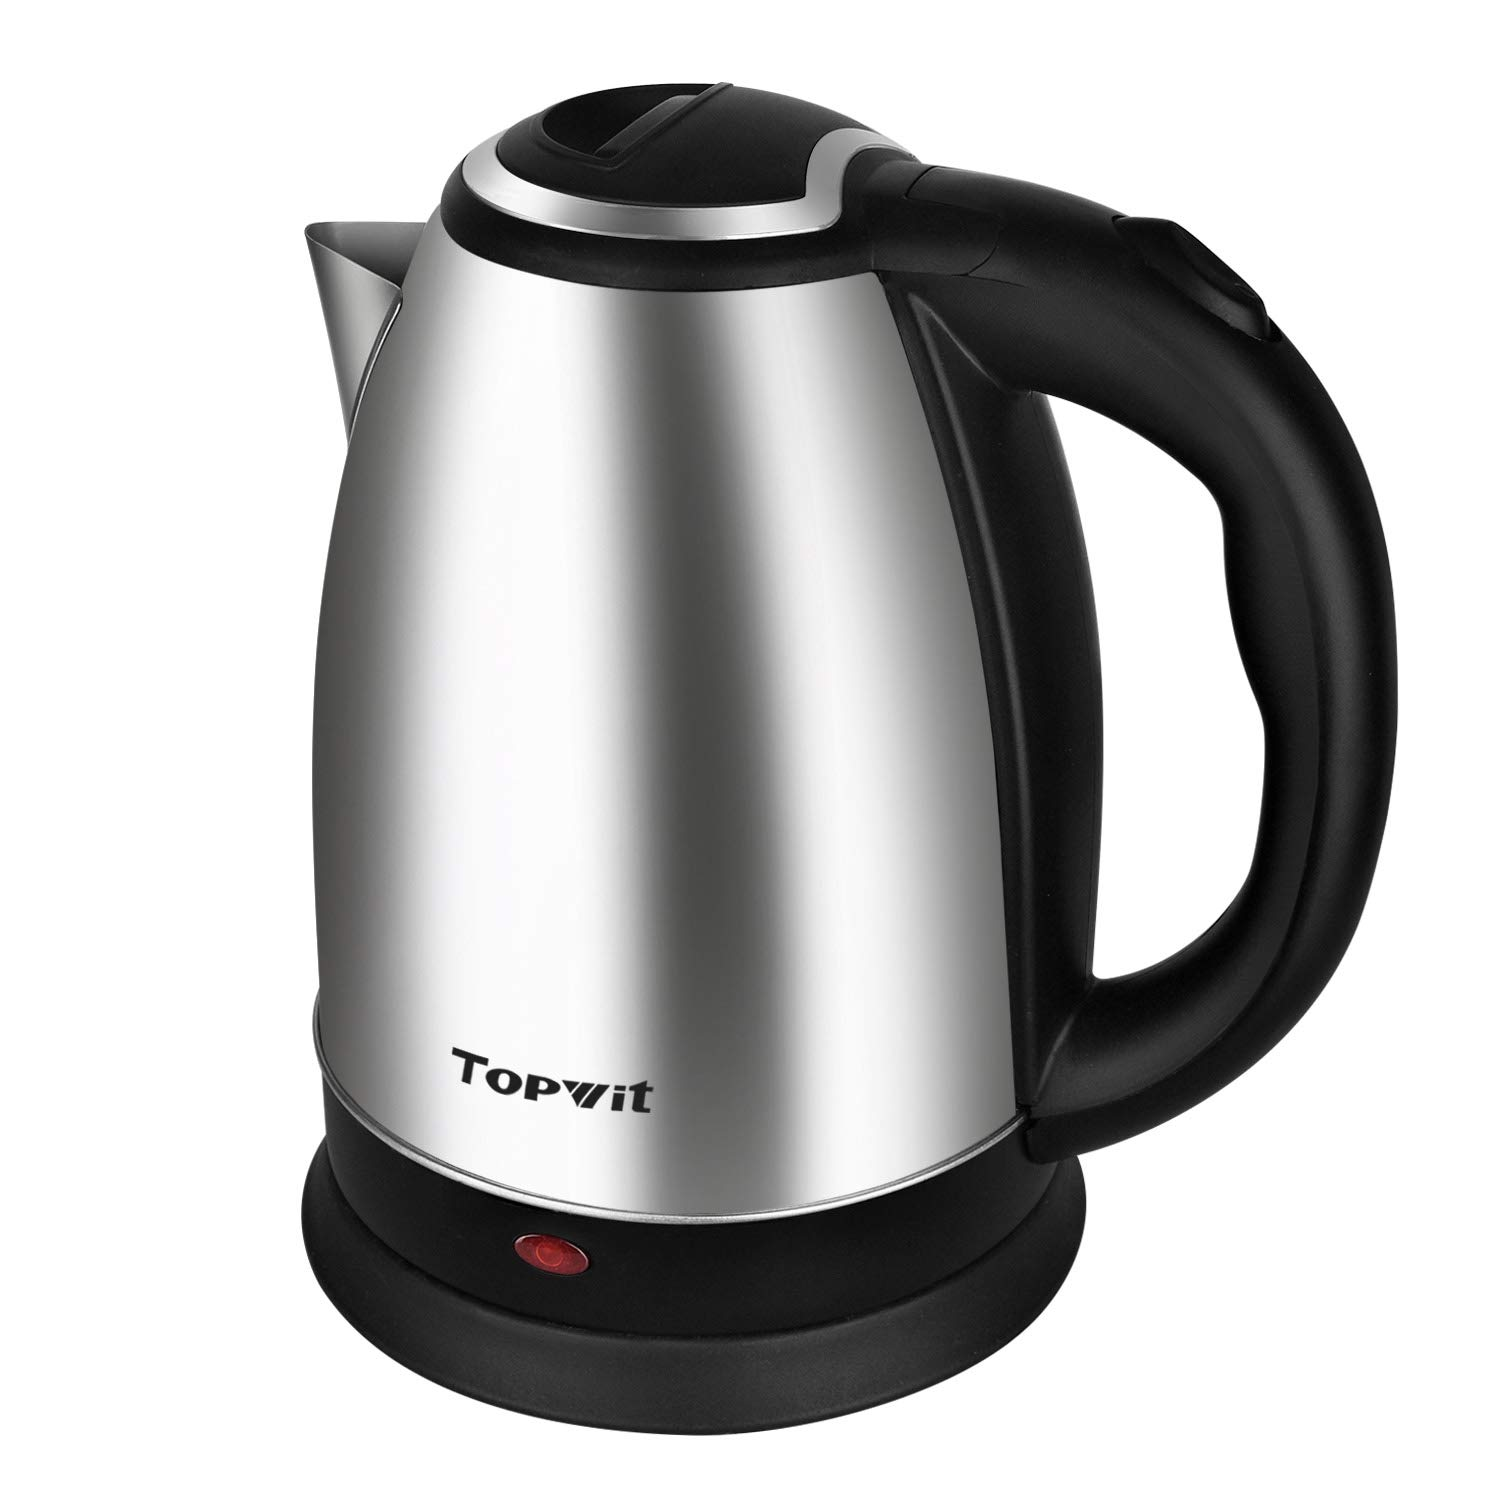 Topwit Electric Kettle Water Heater Boiler, Stainless Steel Cordless Tea Kettle 2 Liter with Fast Boil, Auto Shut-Off and Boil Dry Protection